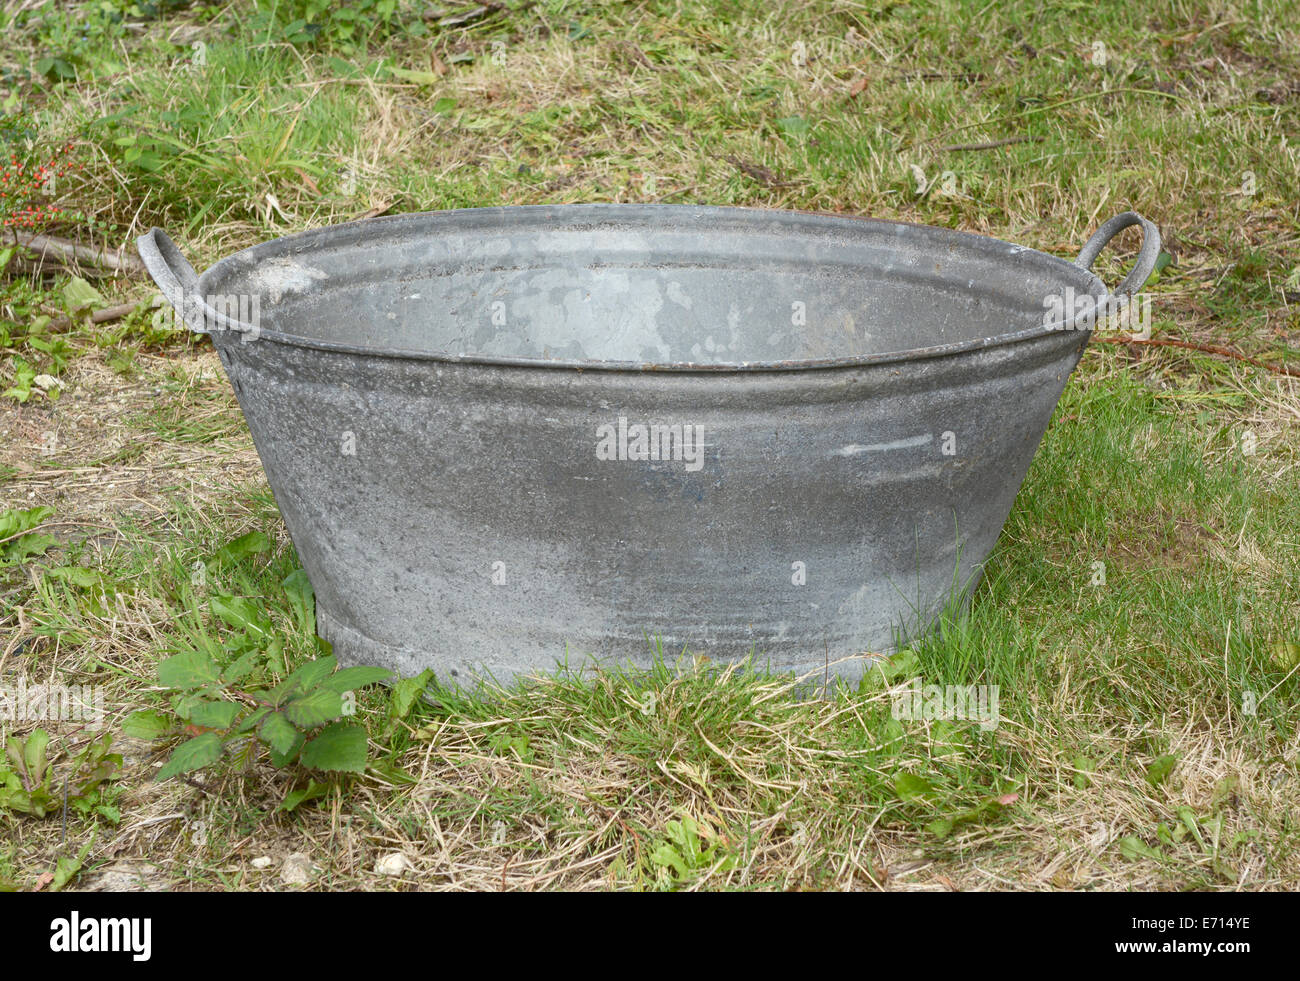 Tin Bath Stock Photos & Tin Bath Stock Images - Alamy